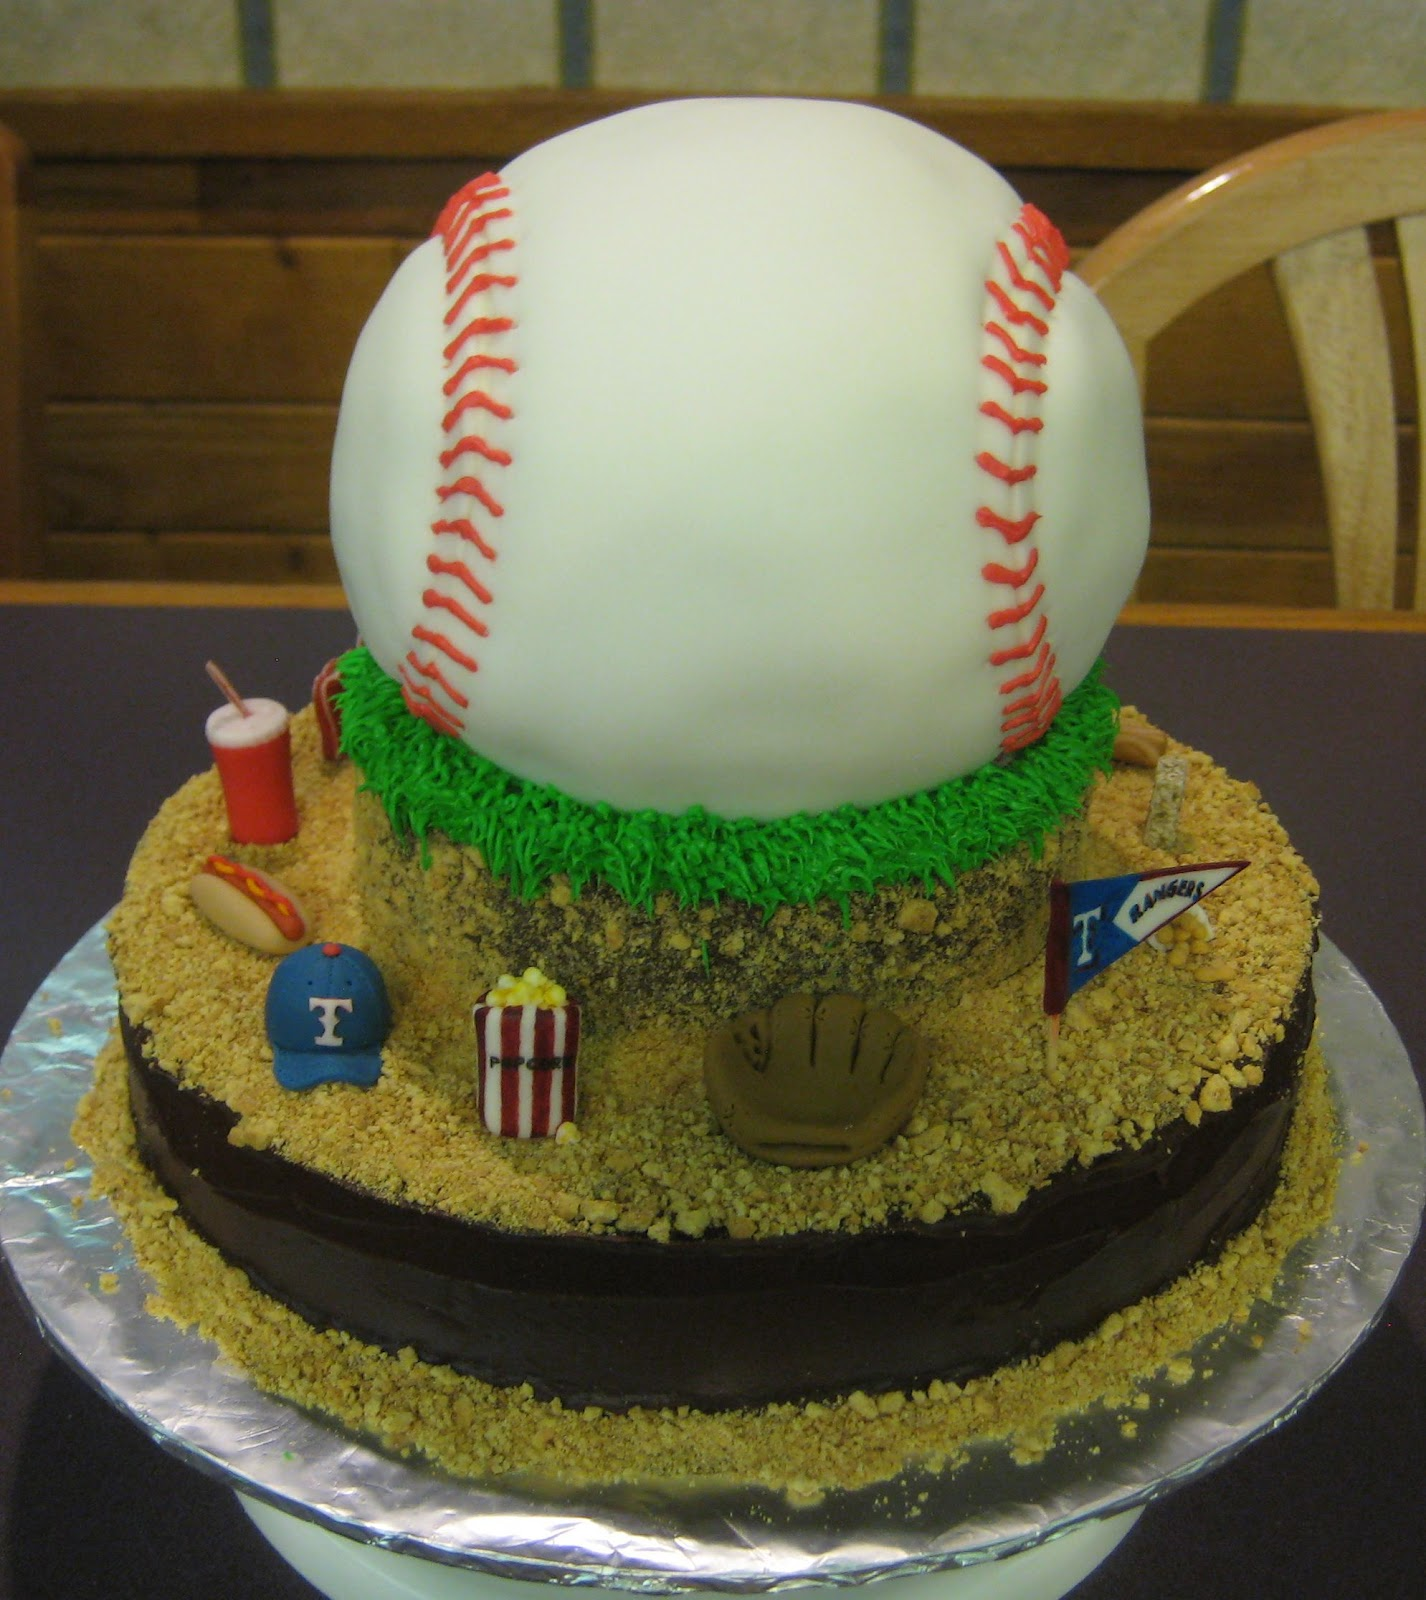 My Cake Corner Take Me Out to the Ball Game September 2011